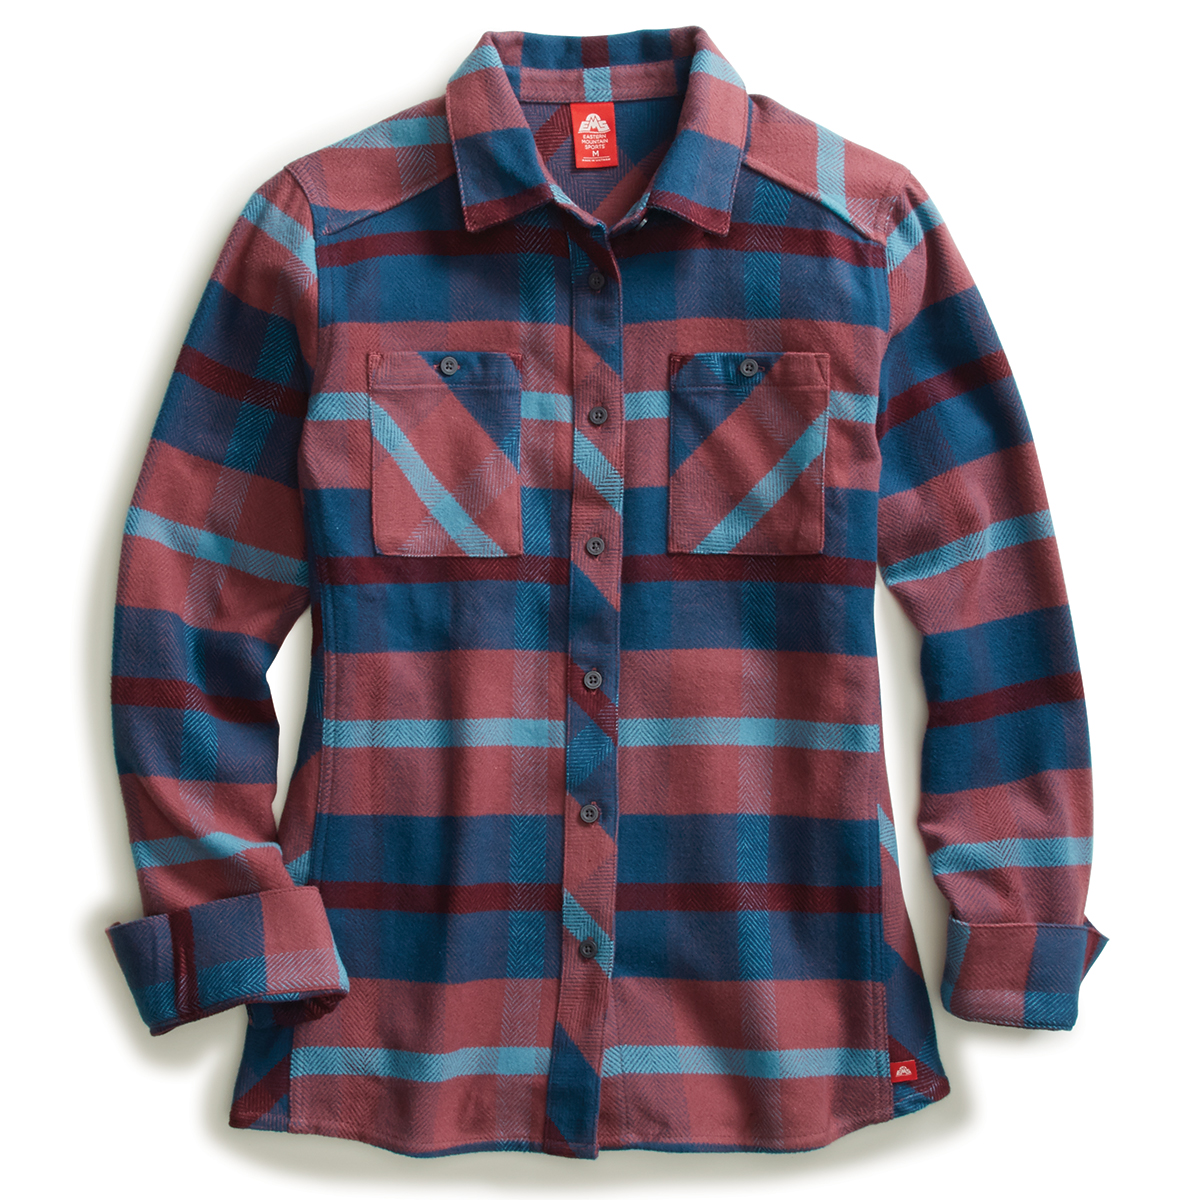 Ems Women's Cabin Flannel - Red, XS